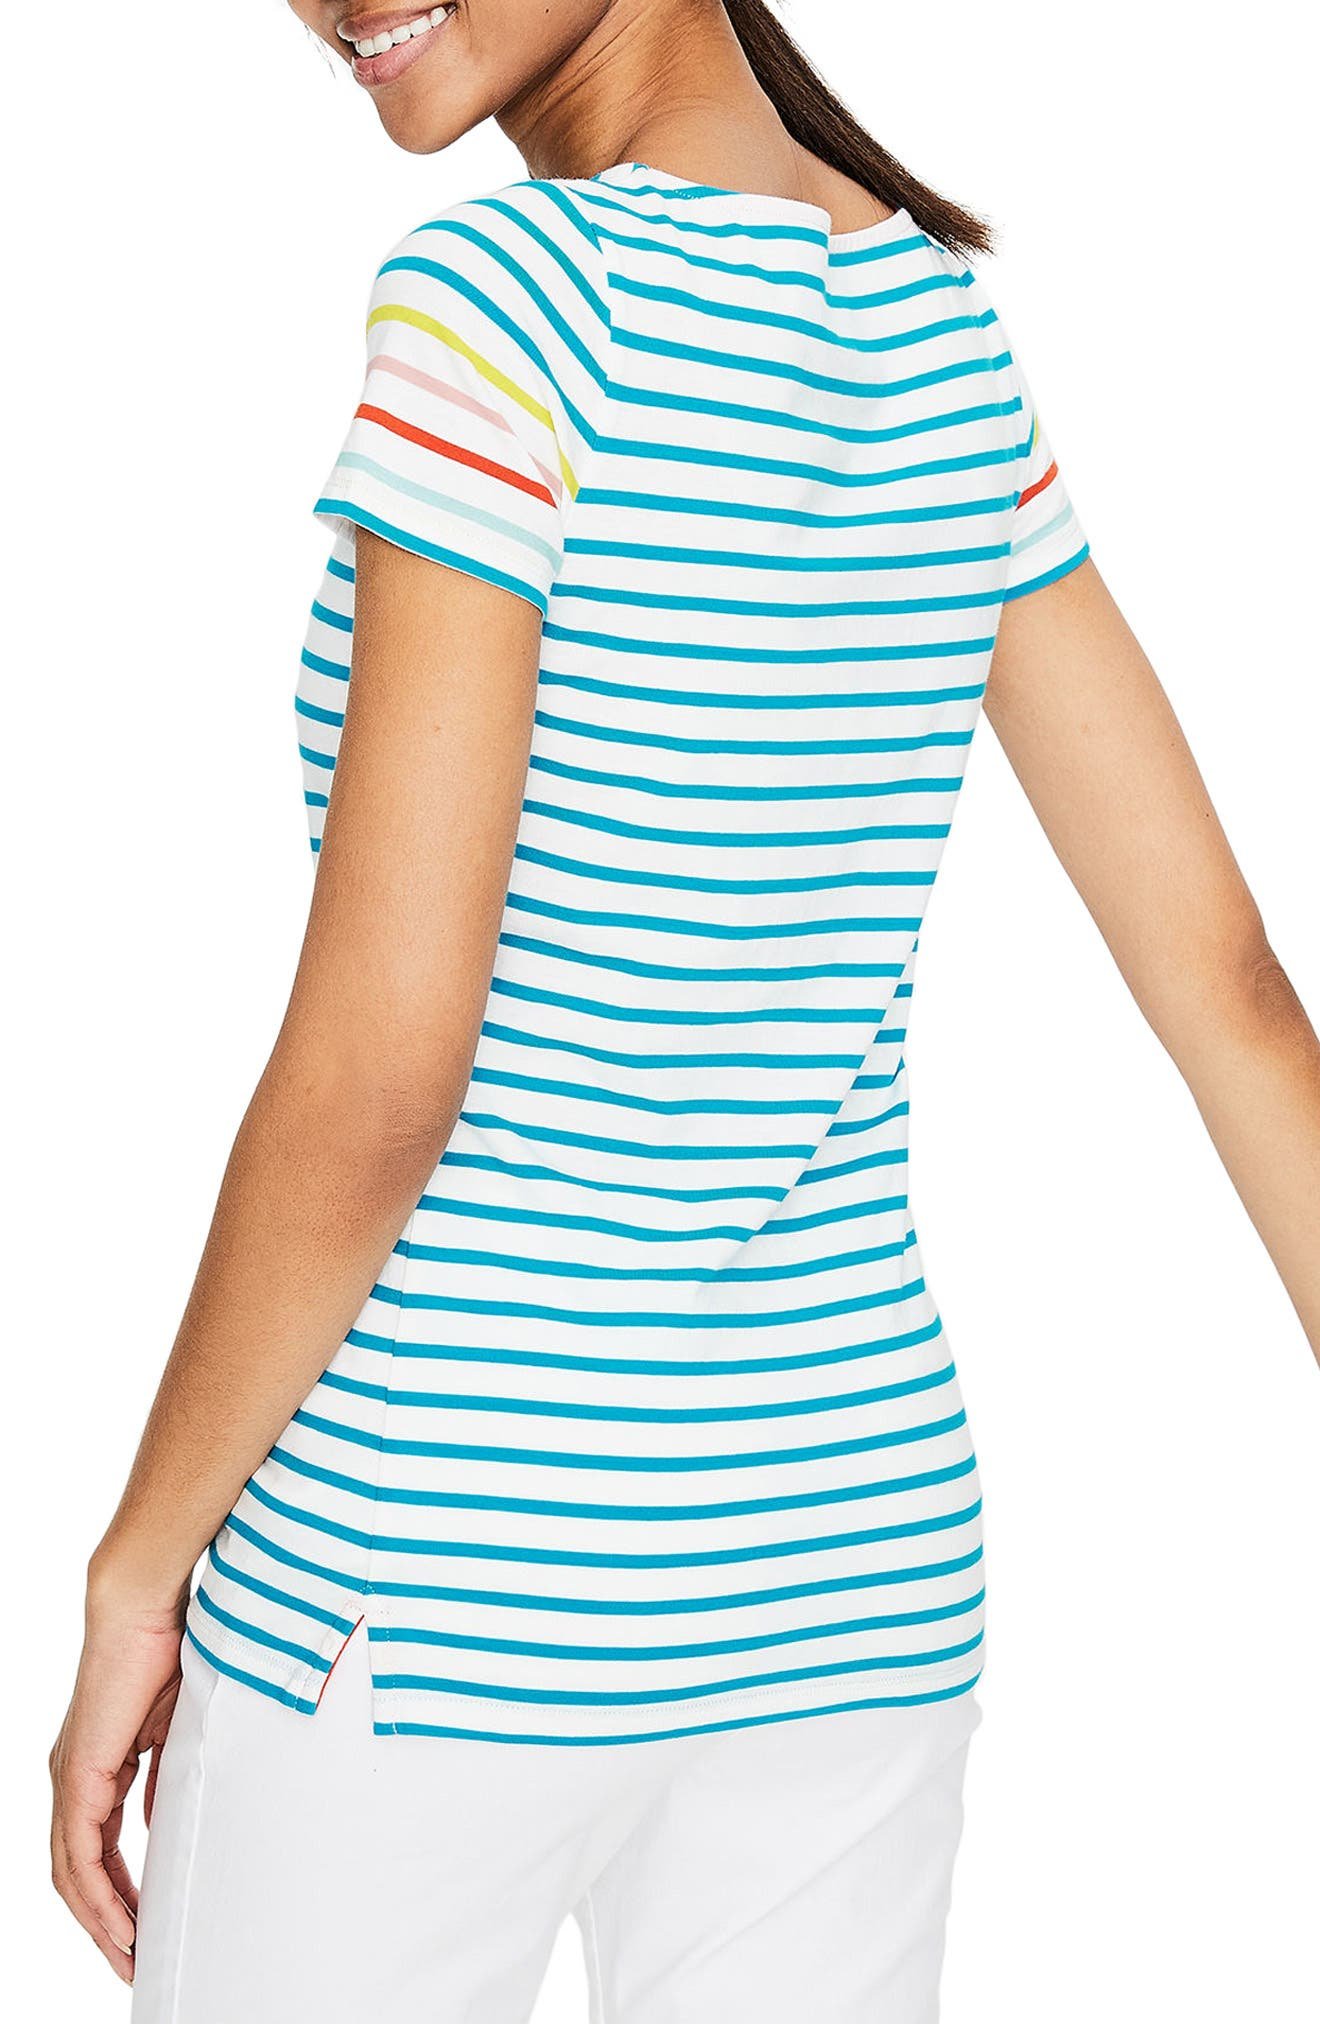 Breton Short Sleeve Stripe Cotton Top,                             Alternate thumbnail 2, color,                             454